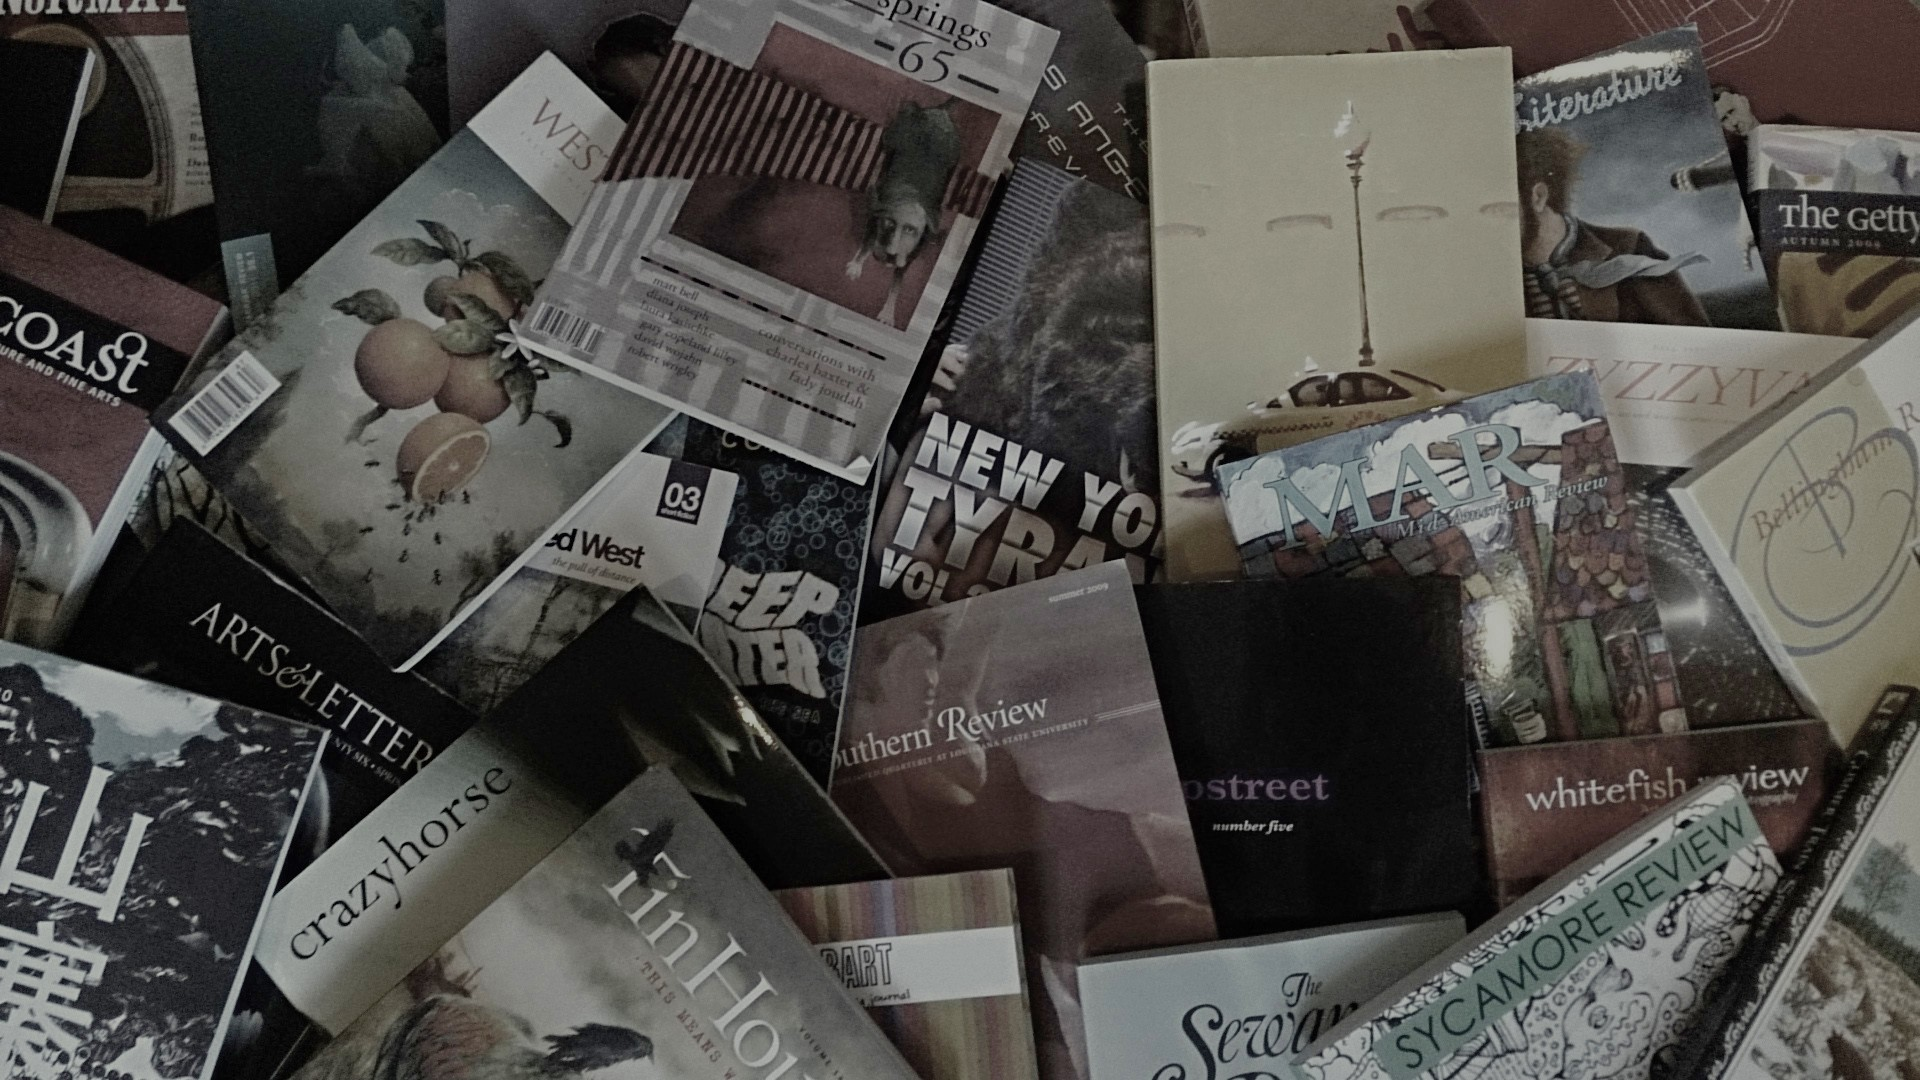 Scattered pile of different literary journals